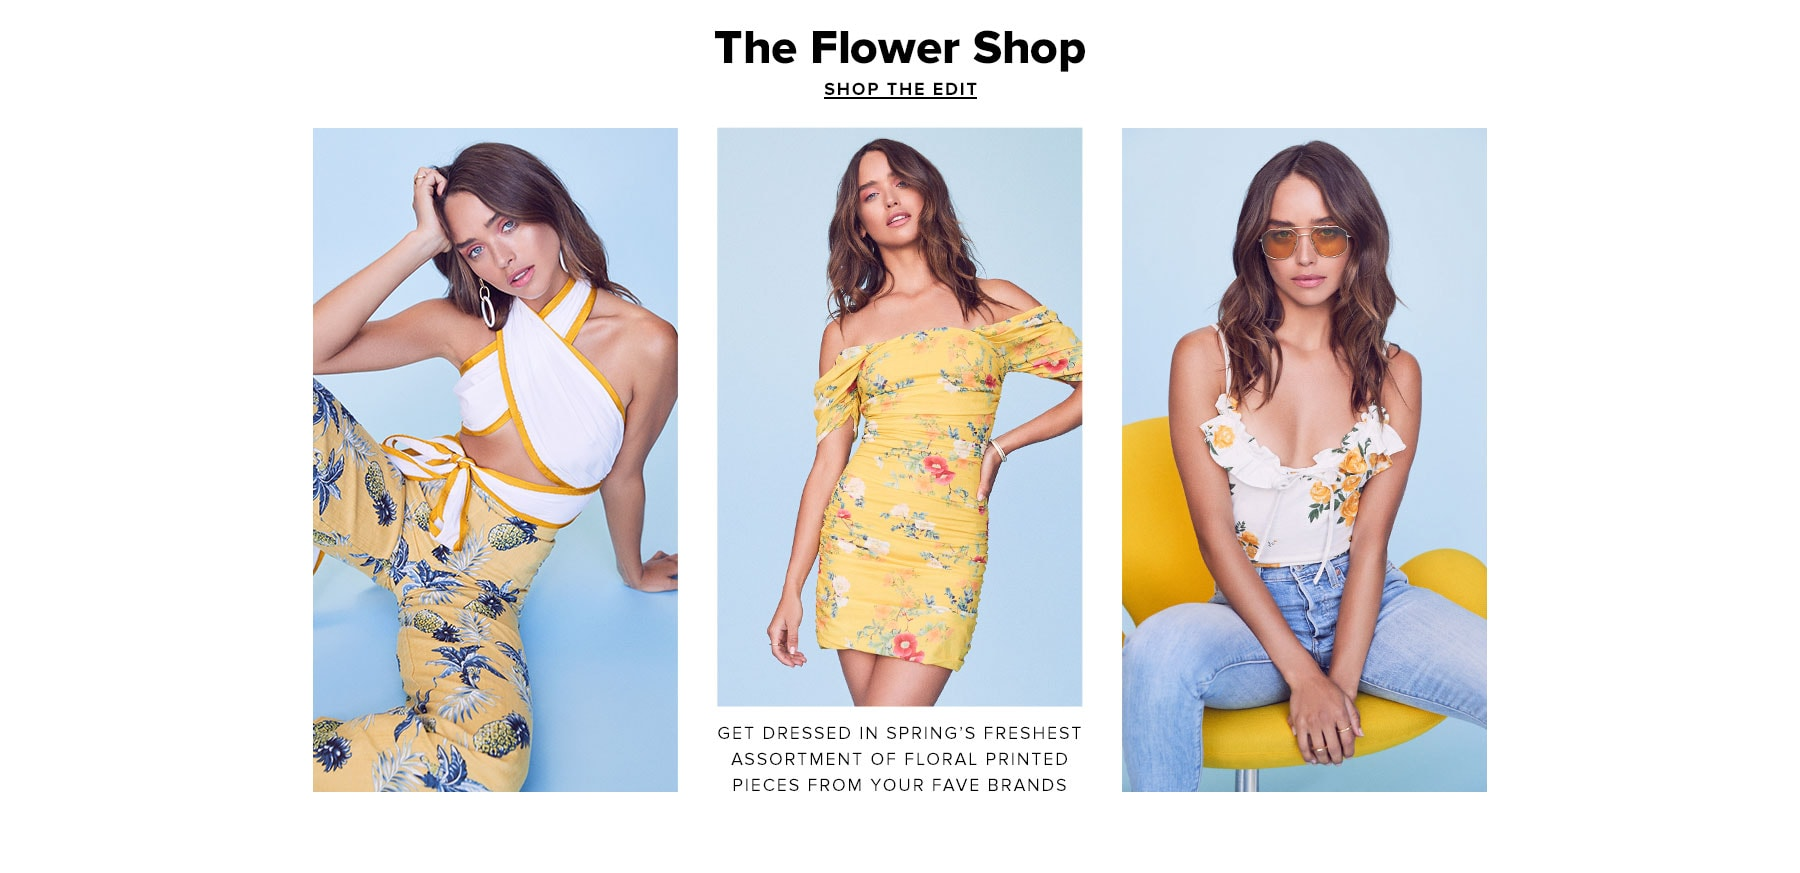 The Flower Shop. Get dressed in spring's freshest assortment of floral printed pieces from faves brands. Shop the Edit.